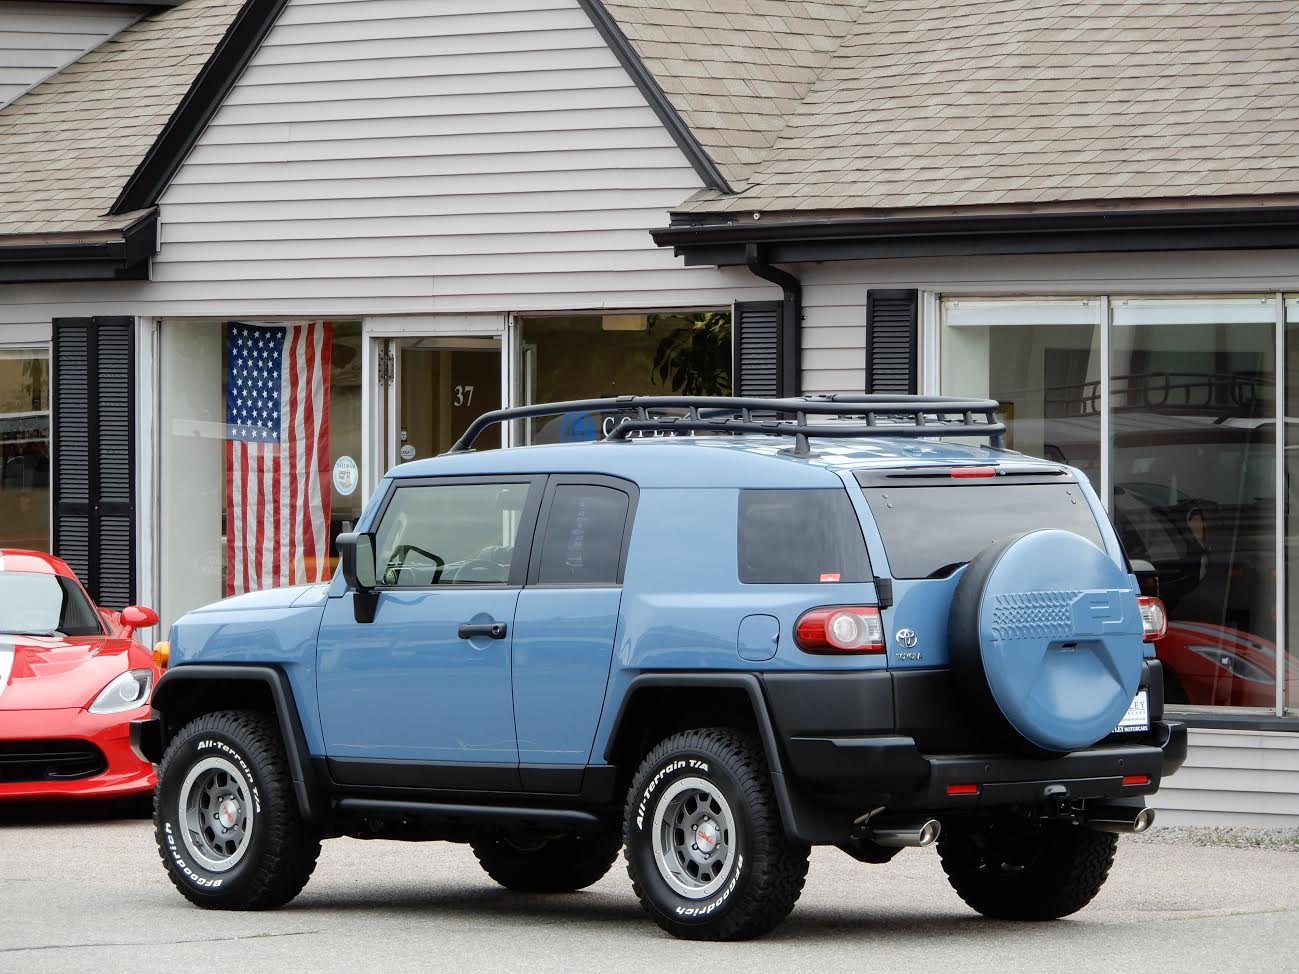 2014 toyota fj cruiser 157 miles from new copley motorcars for 2014 toyota fj cruiser interior